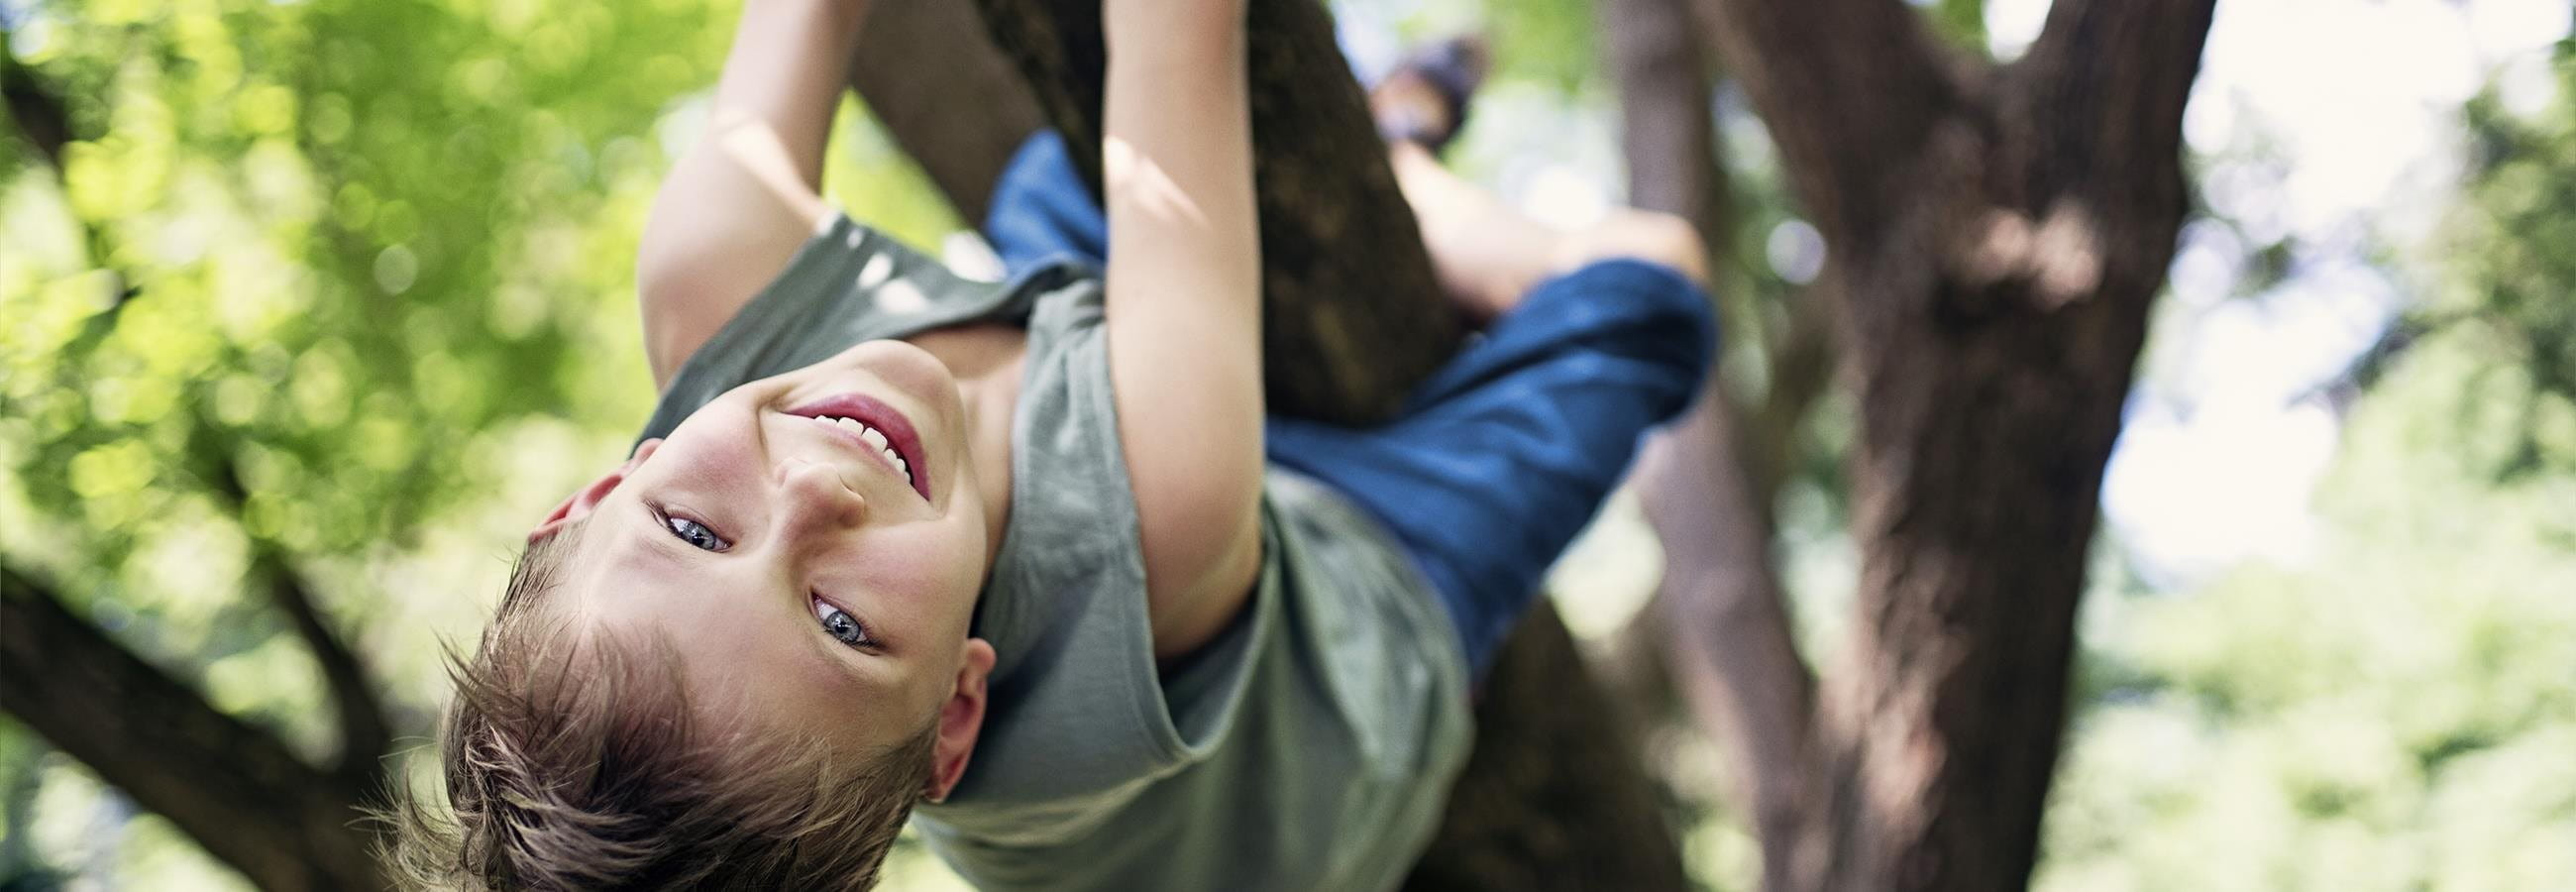 Child climbs in the tree